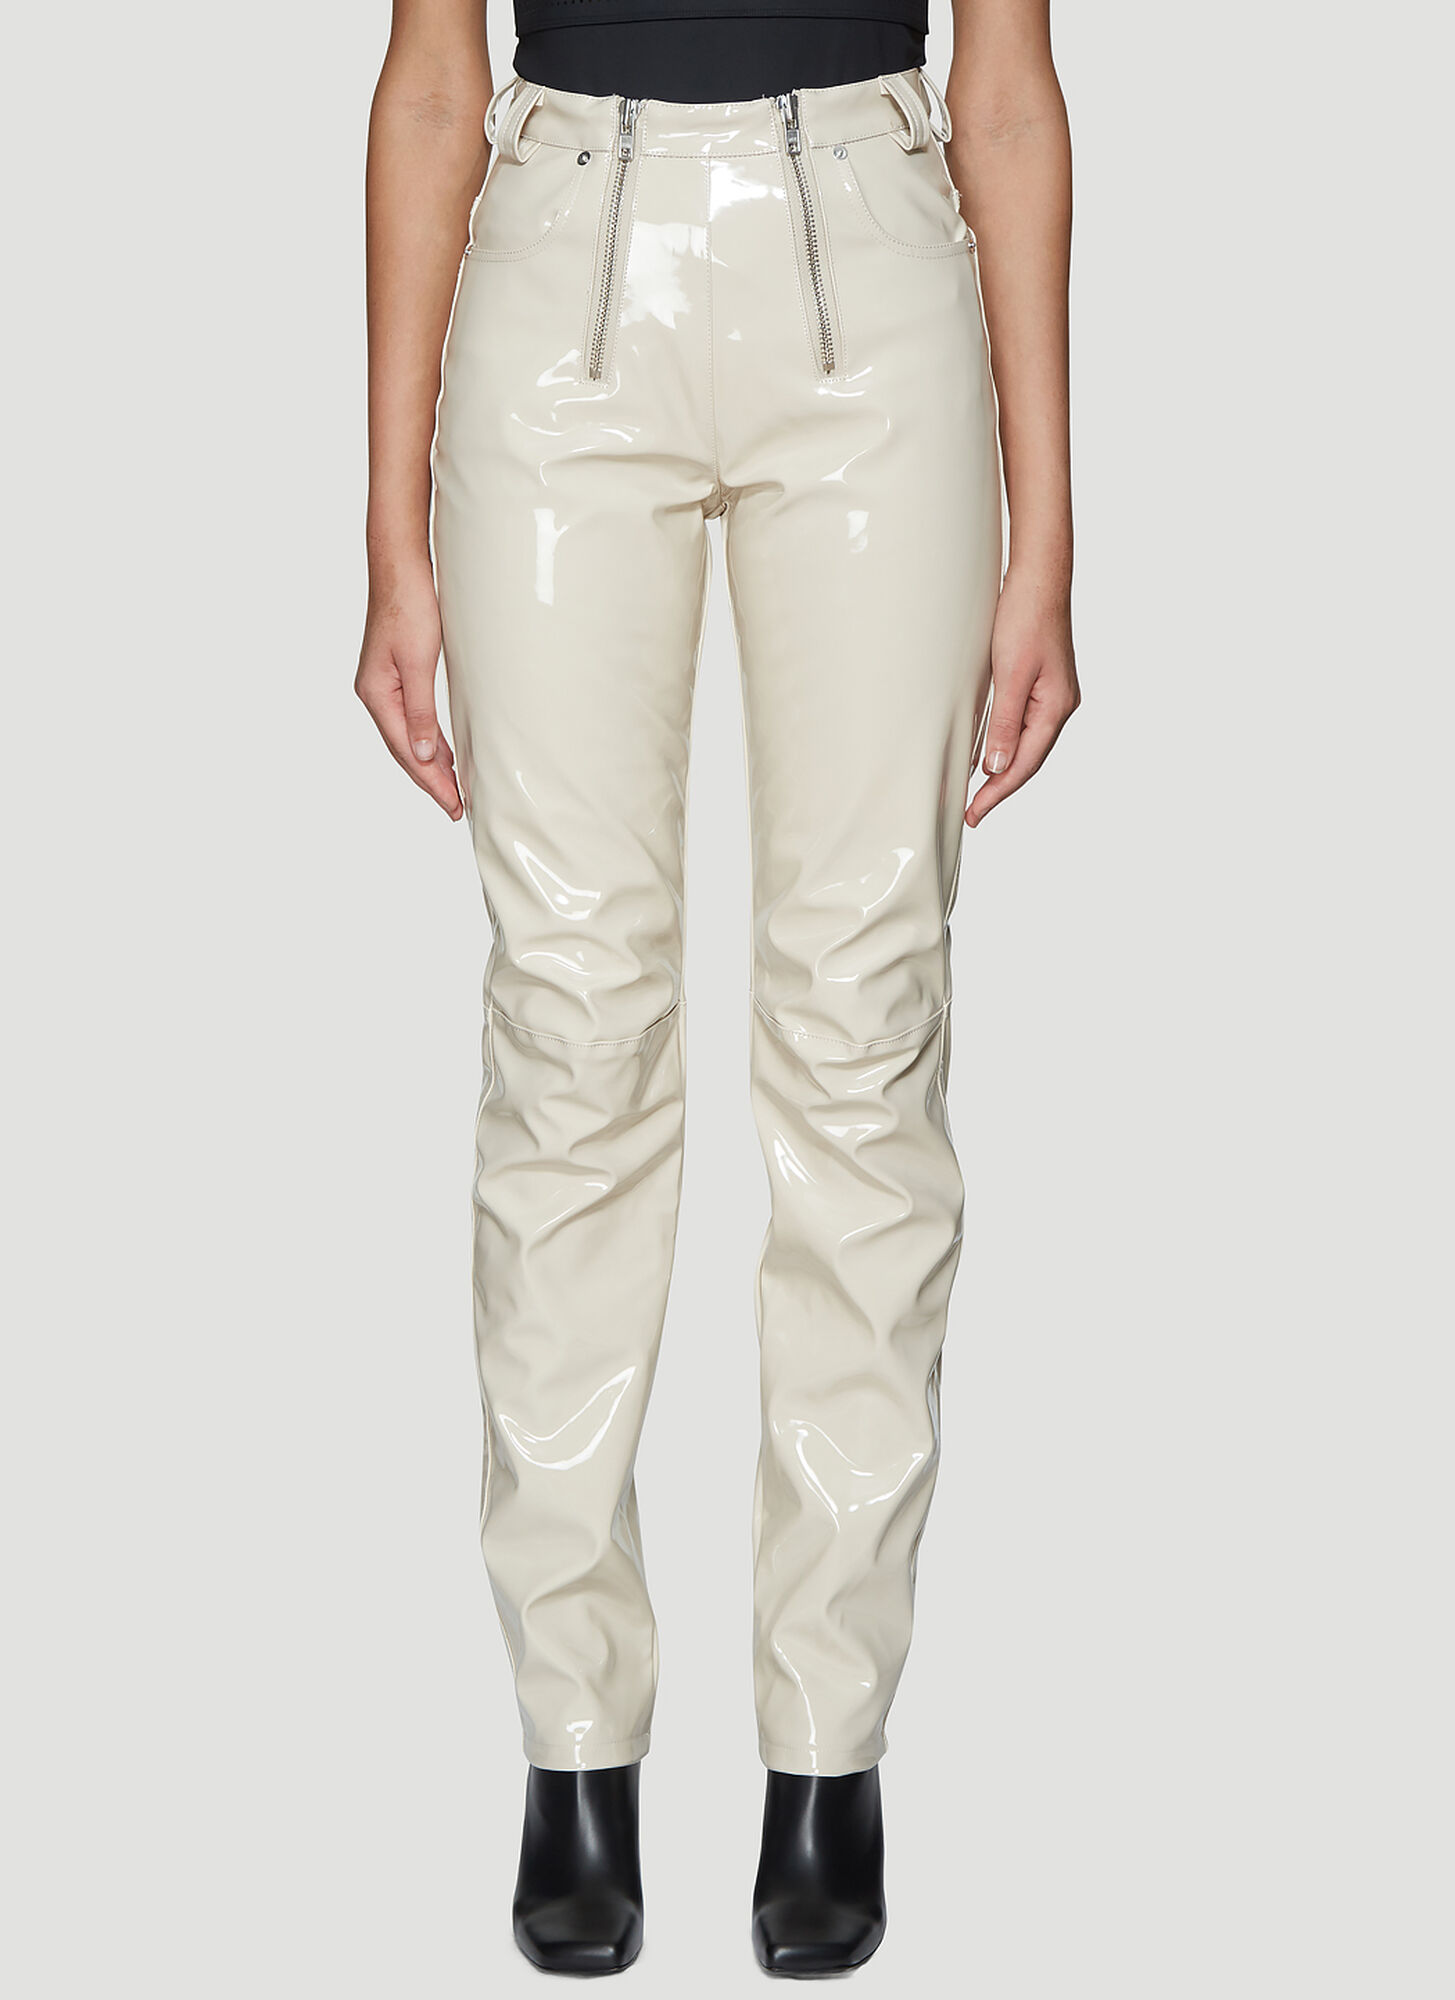 Photo of GmbH High Waist Vinyl Pants in Beige - GmbH Pants